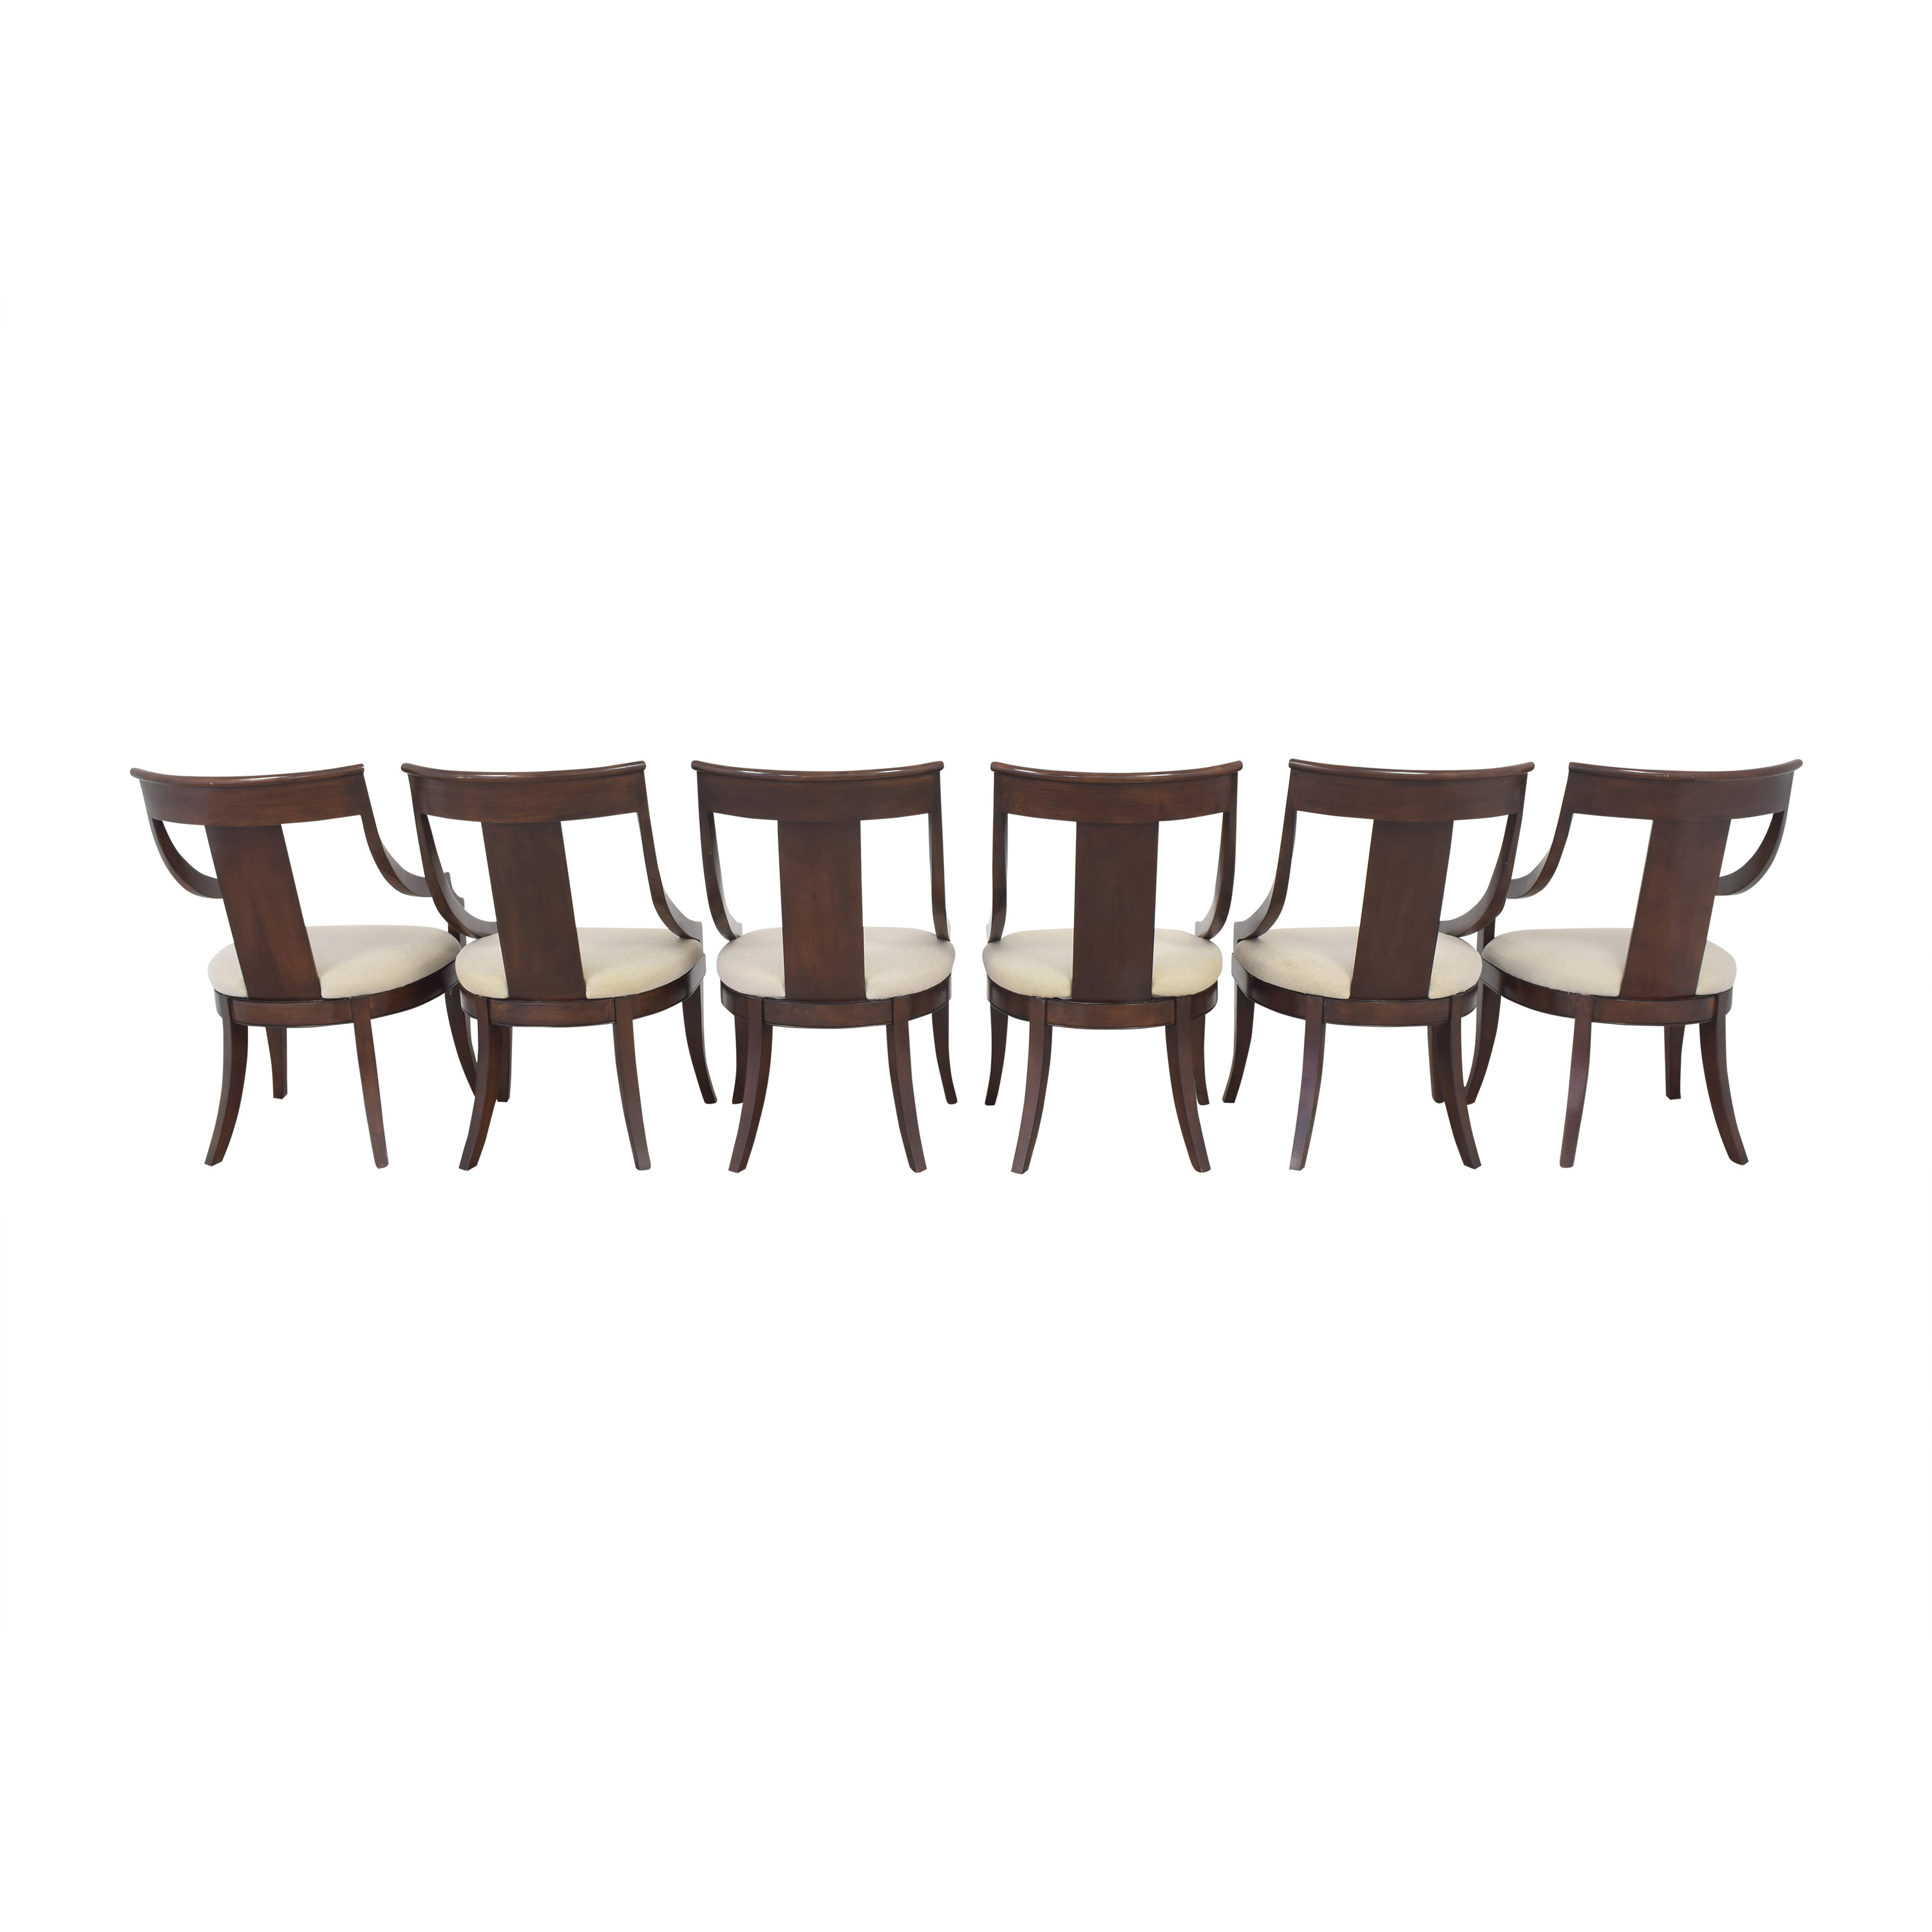 Macy's Upholstered Dining Chairs / Dining Chairs